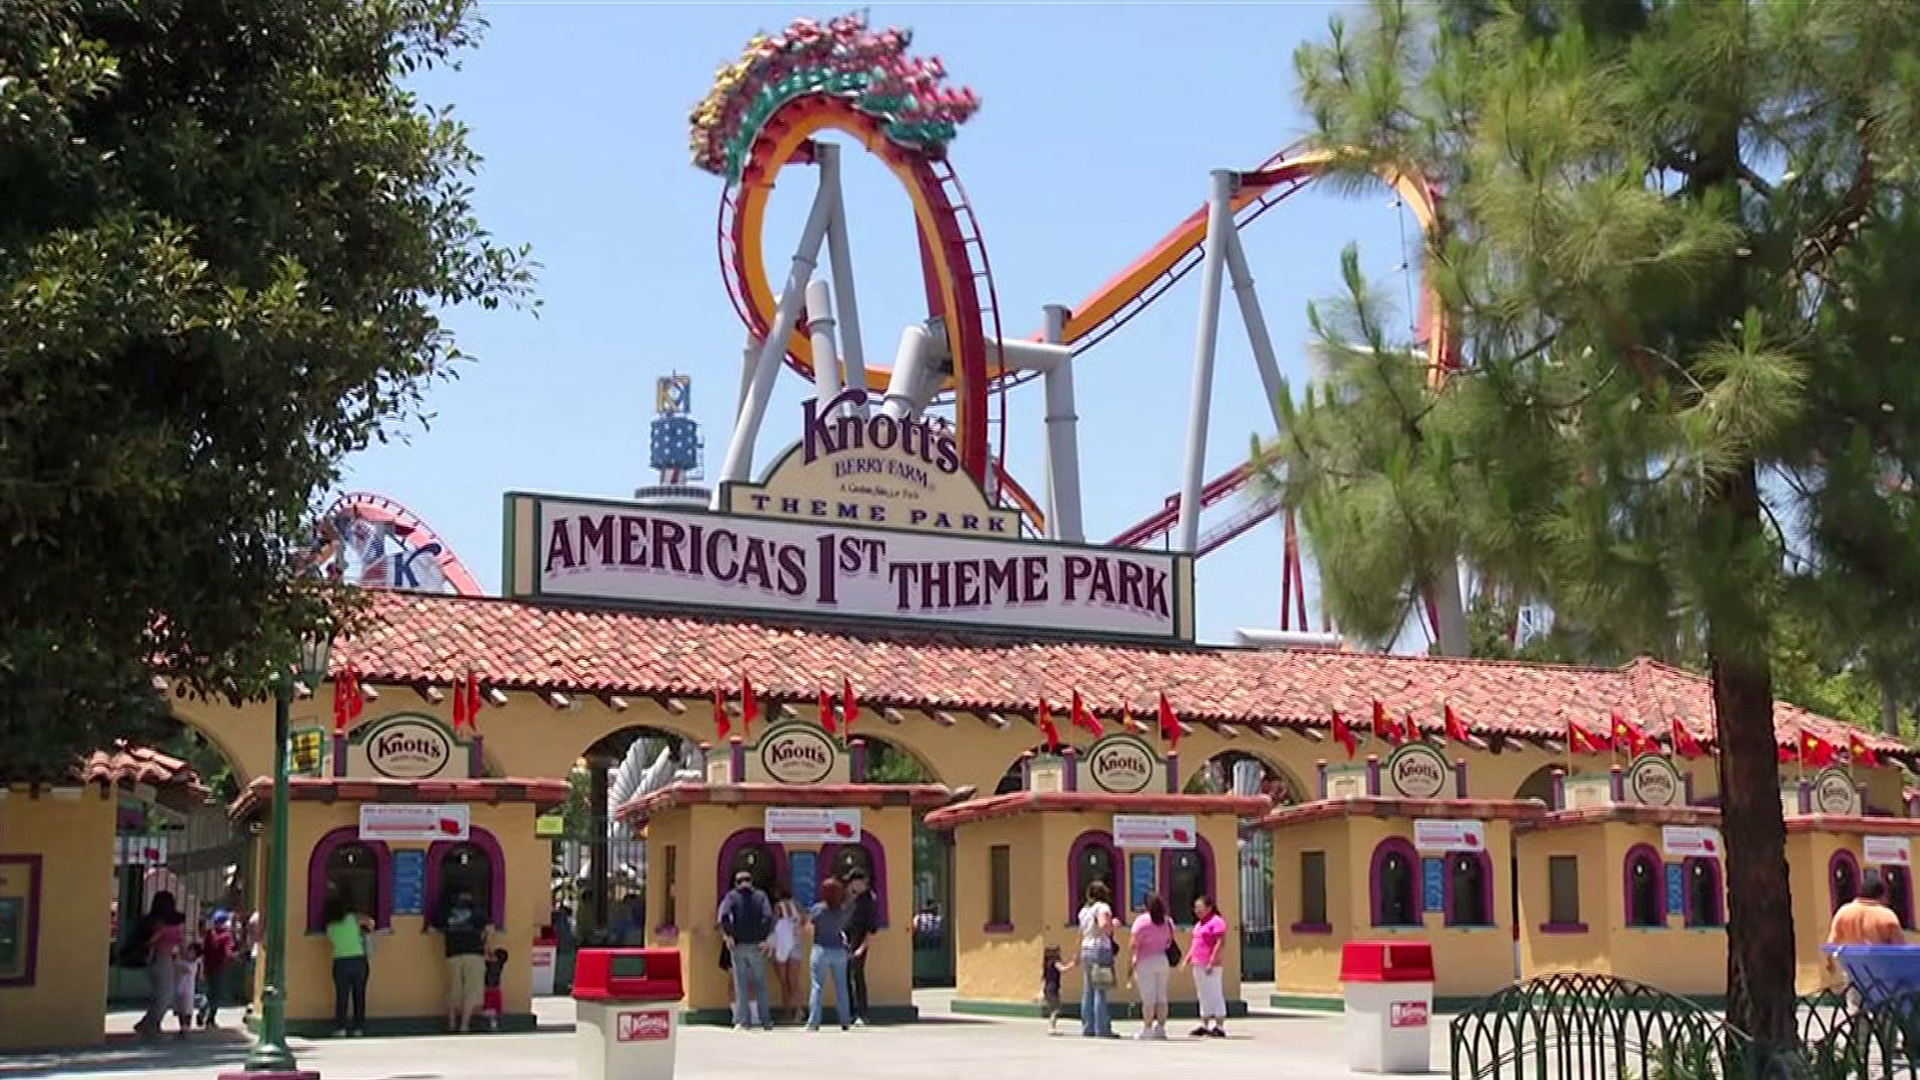 The entrance to Knott's Berry Farm theme park in Buena Park is seen in a file photo.